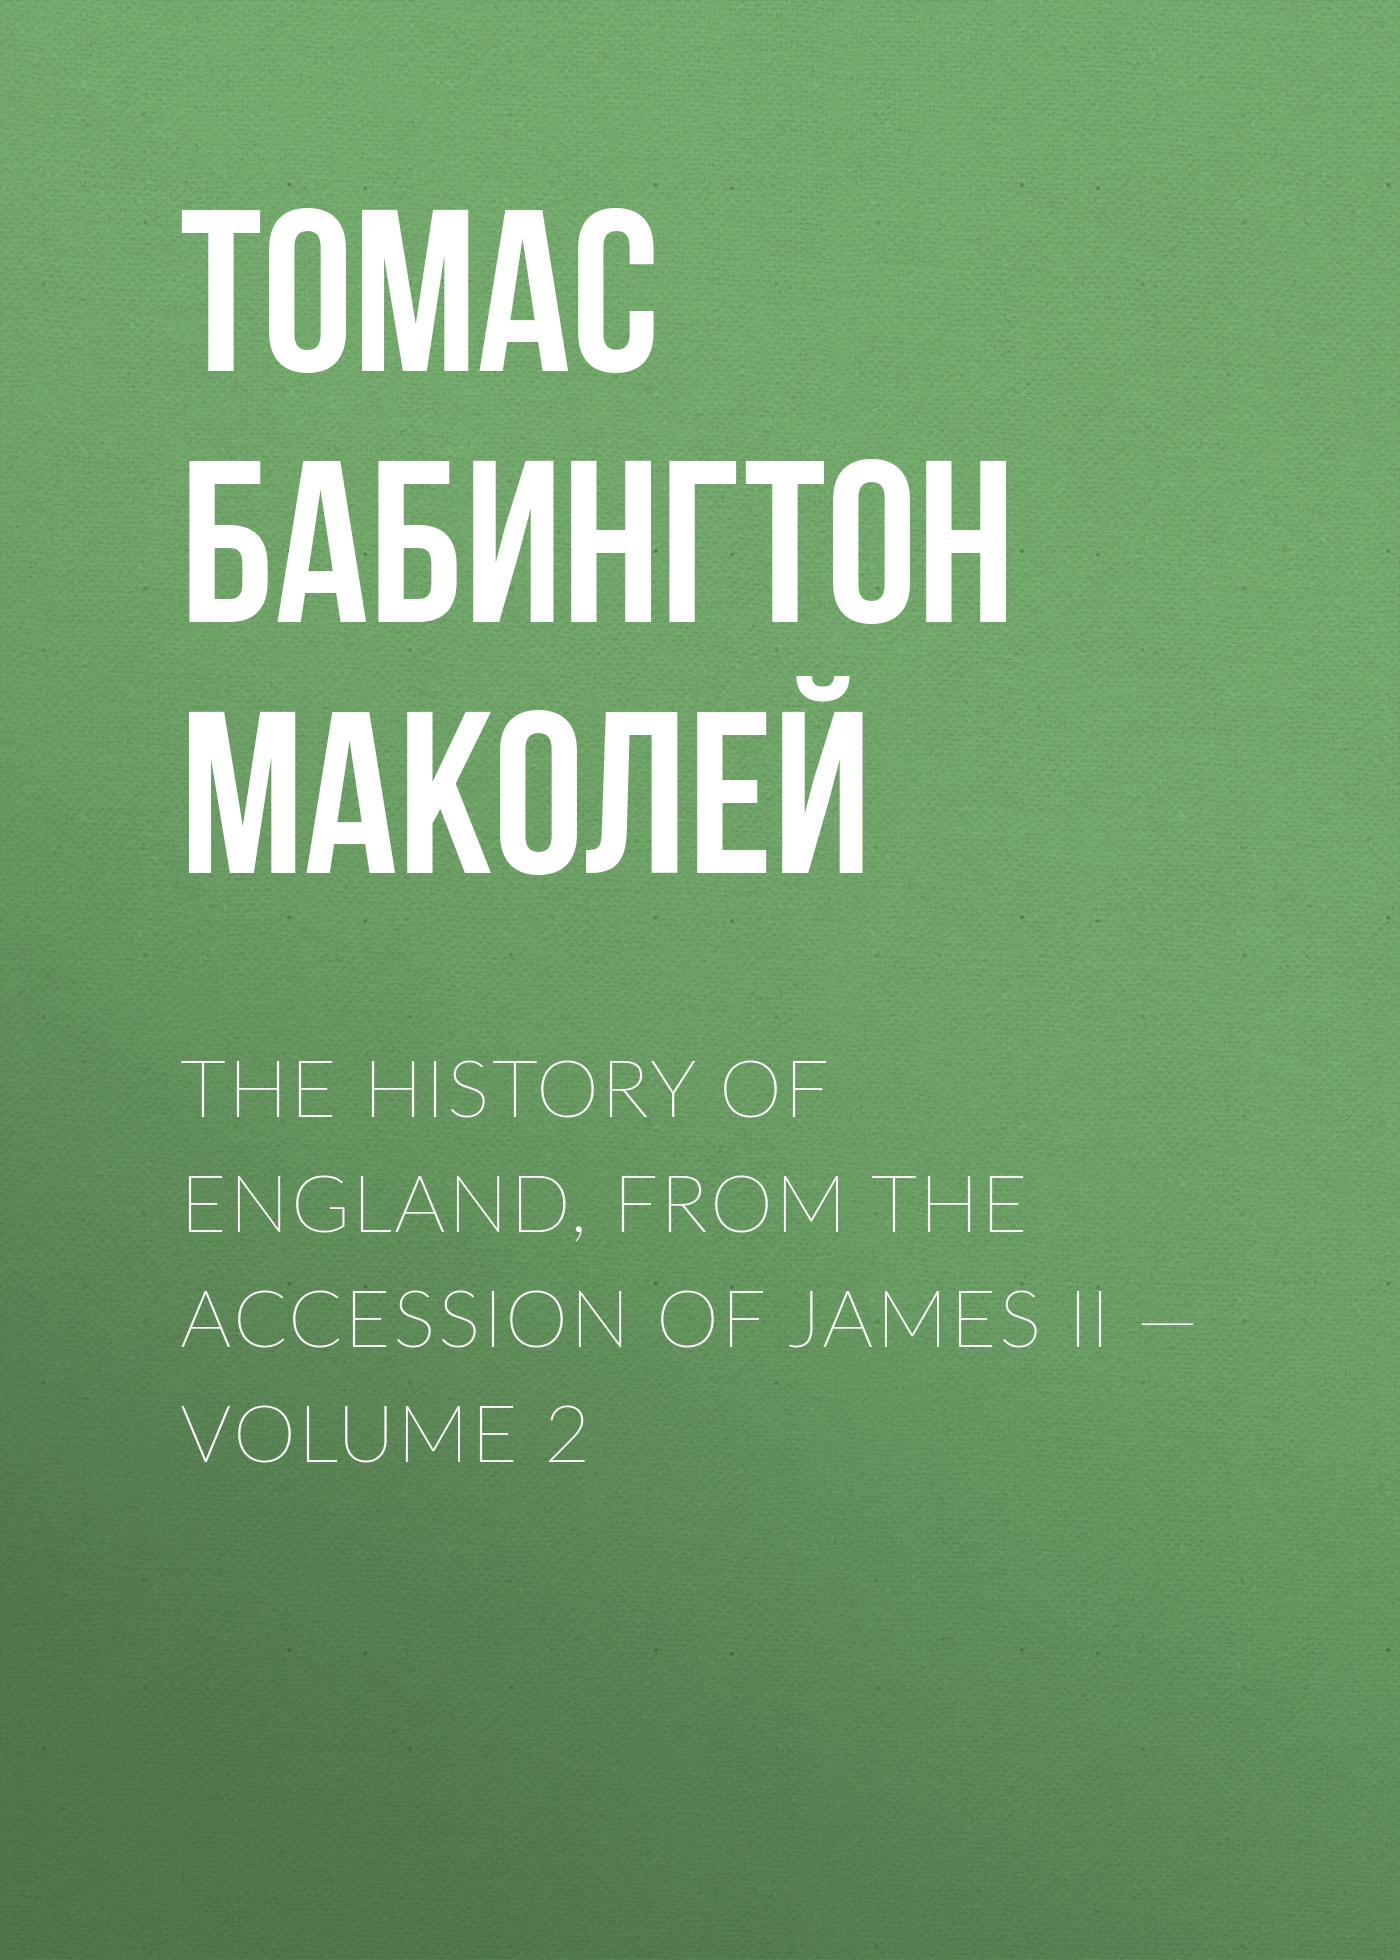 Фото - Томас Бабингтон Маколей The History of England, from the Accession of James II — Volume 2 m guizot history of richard cromwell and the restoration of charles ii volume 2